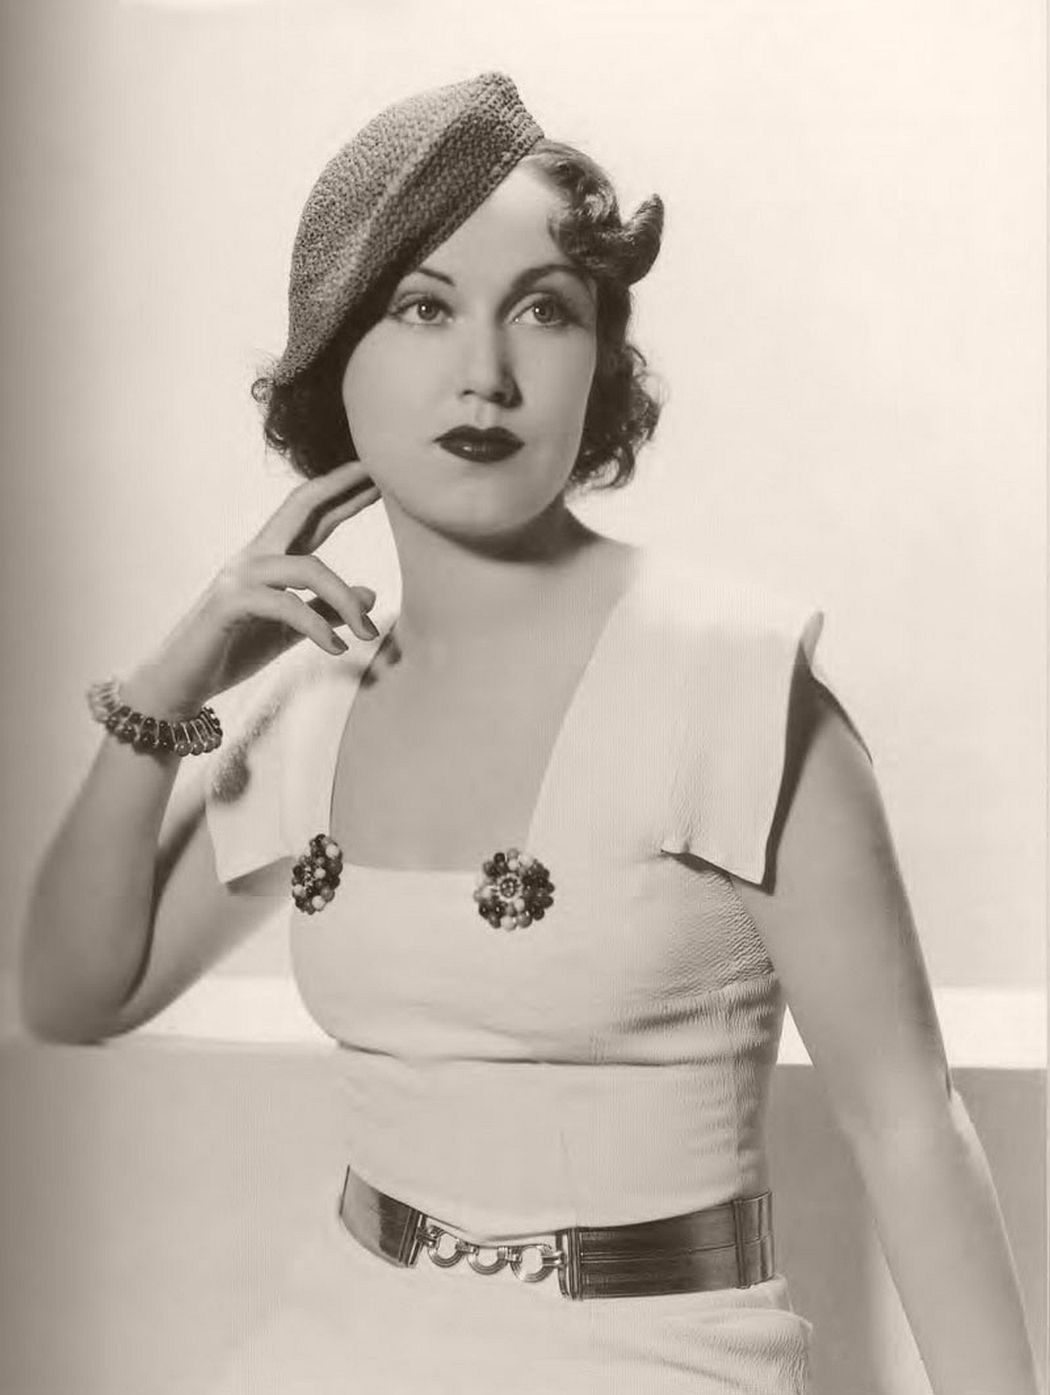 Portraits of Fay Wray